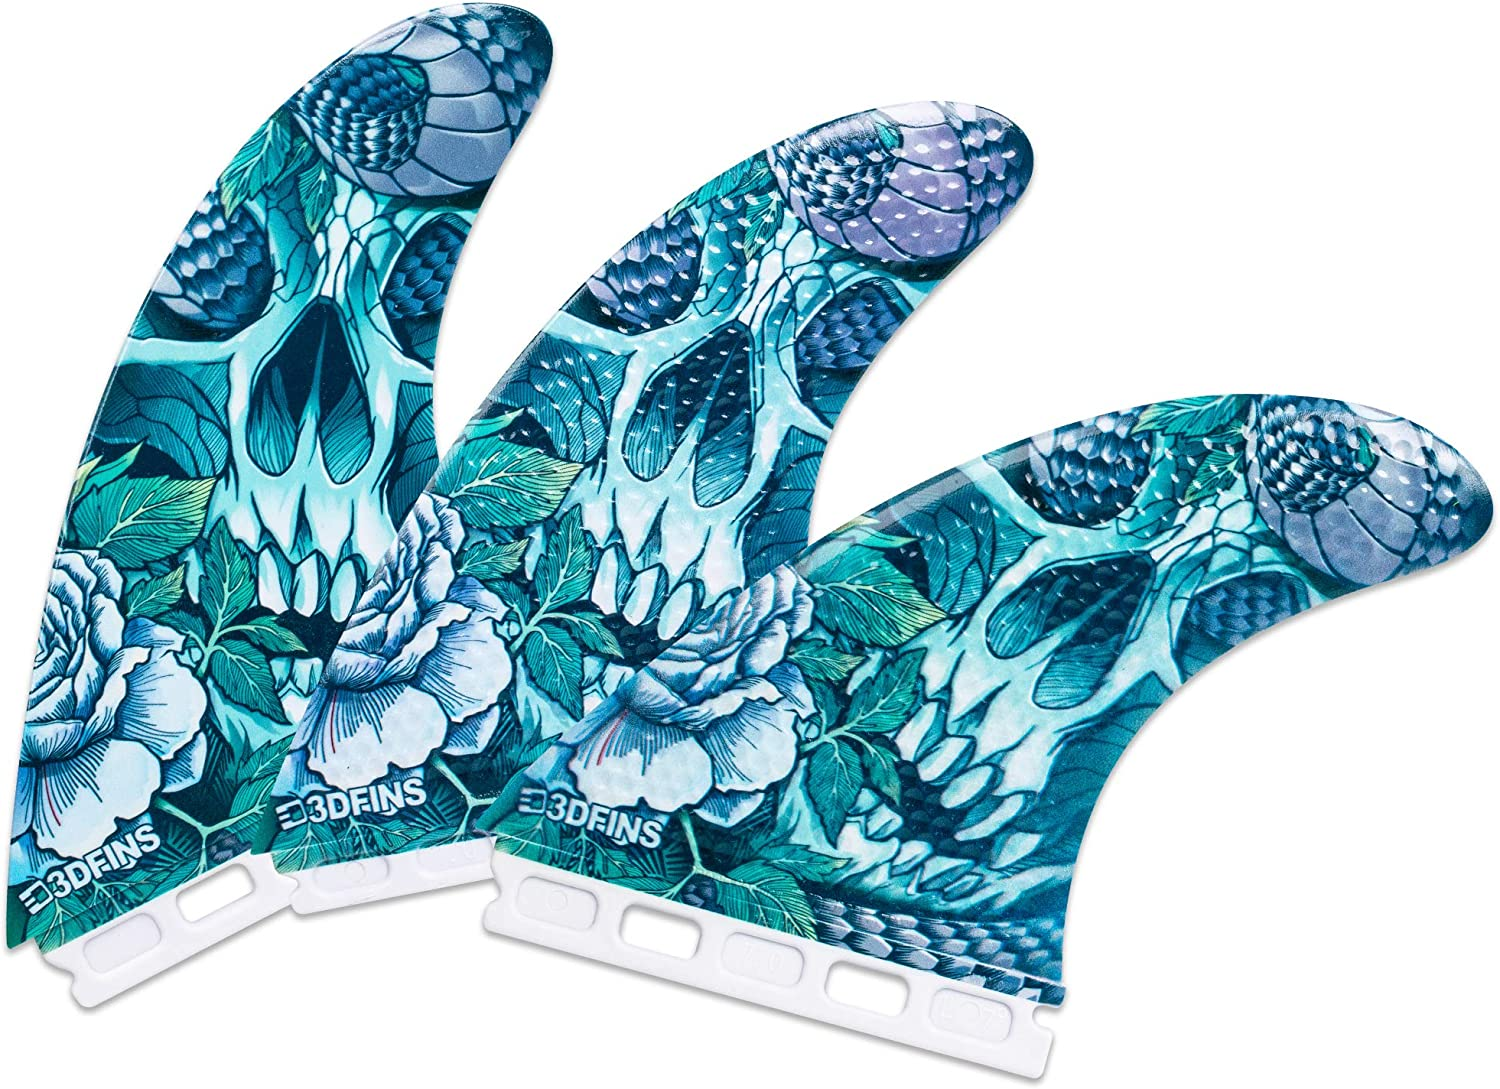 3DFINS High Performance Dallas New Orleans Mall Mall Surfboard Fins 3 Large GOHARD Thruster